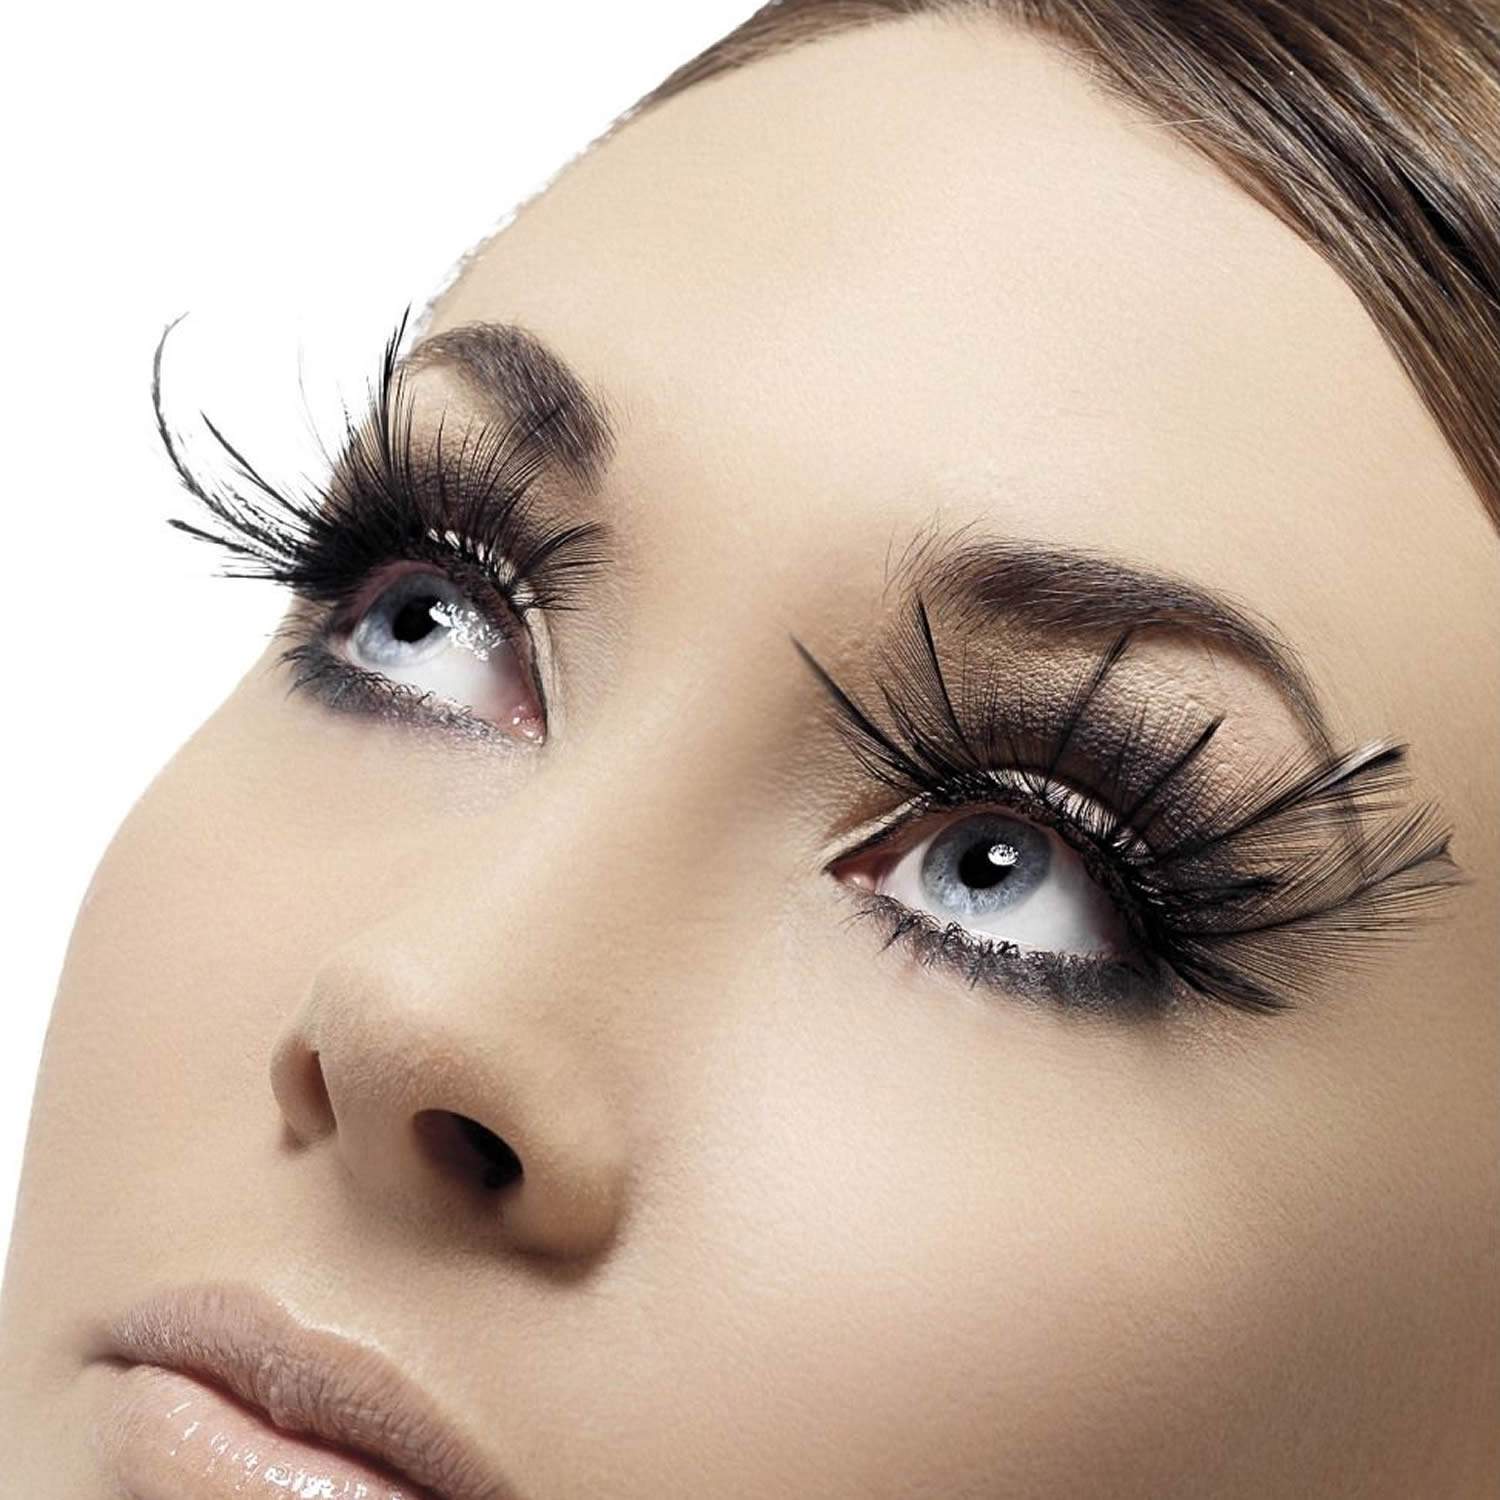 Fever False Eyelashes - Extravagant Black Feather Plumes